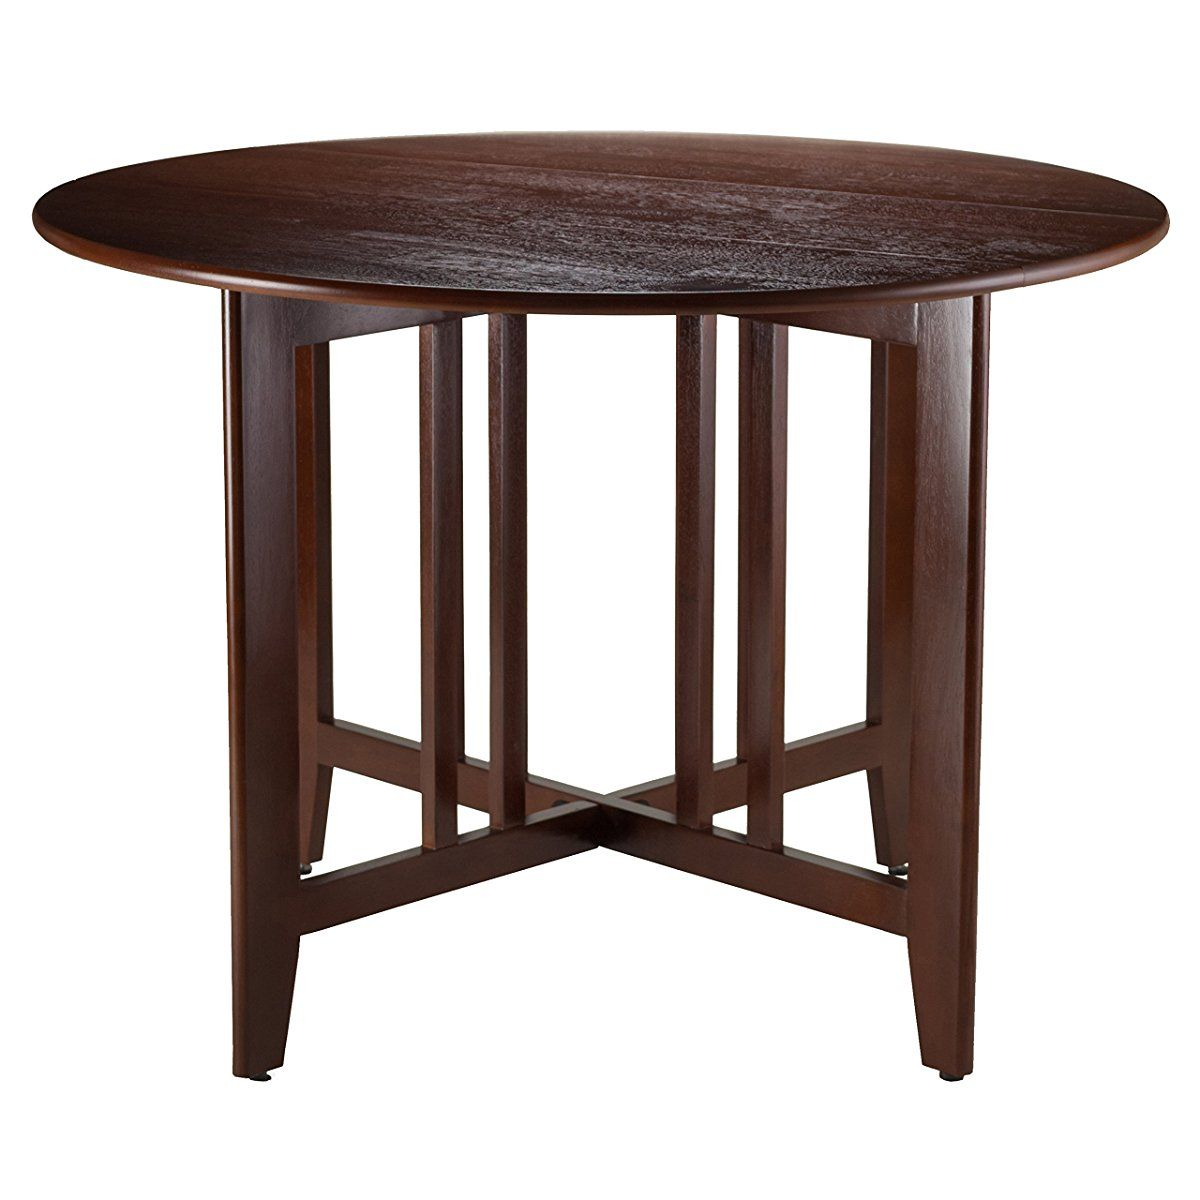 Attrayant Winsome Wood Alamo Double Drop Leaf Round Table Mission, 42 Inch